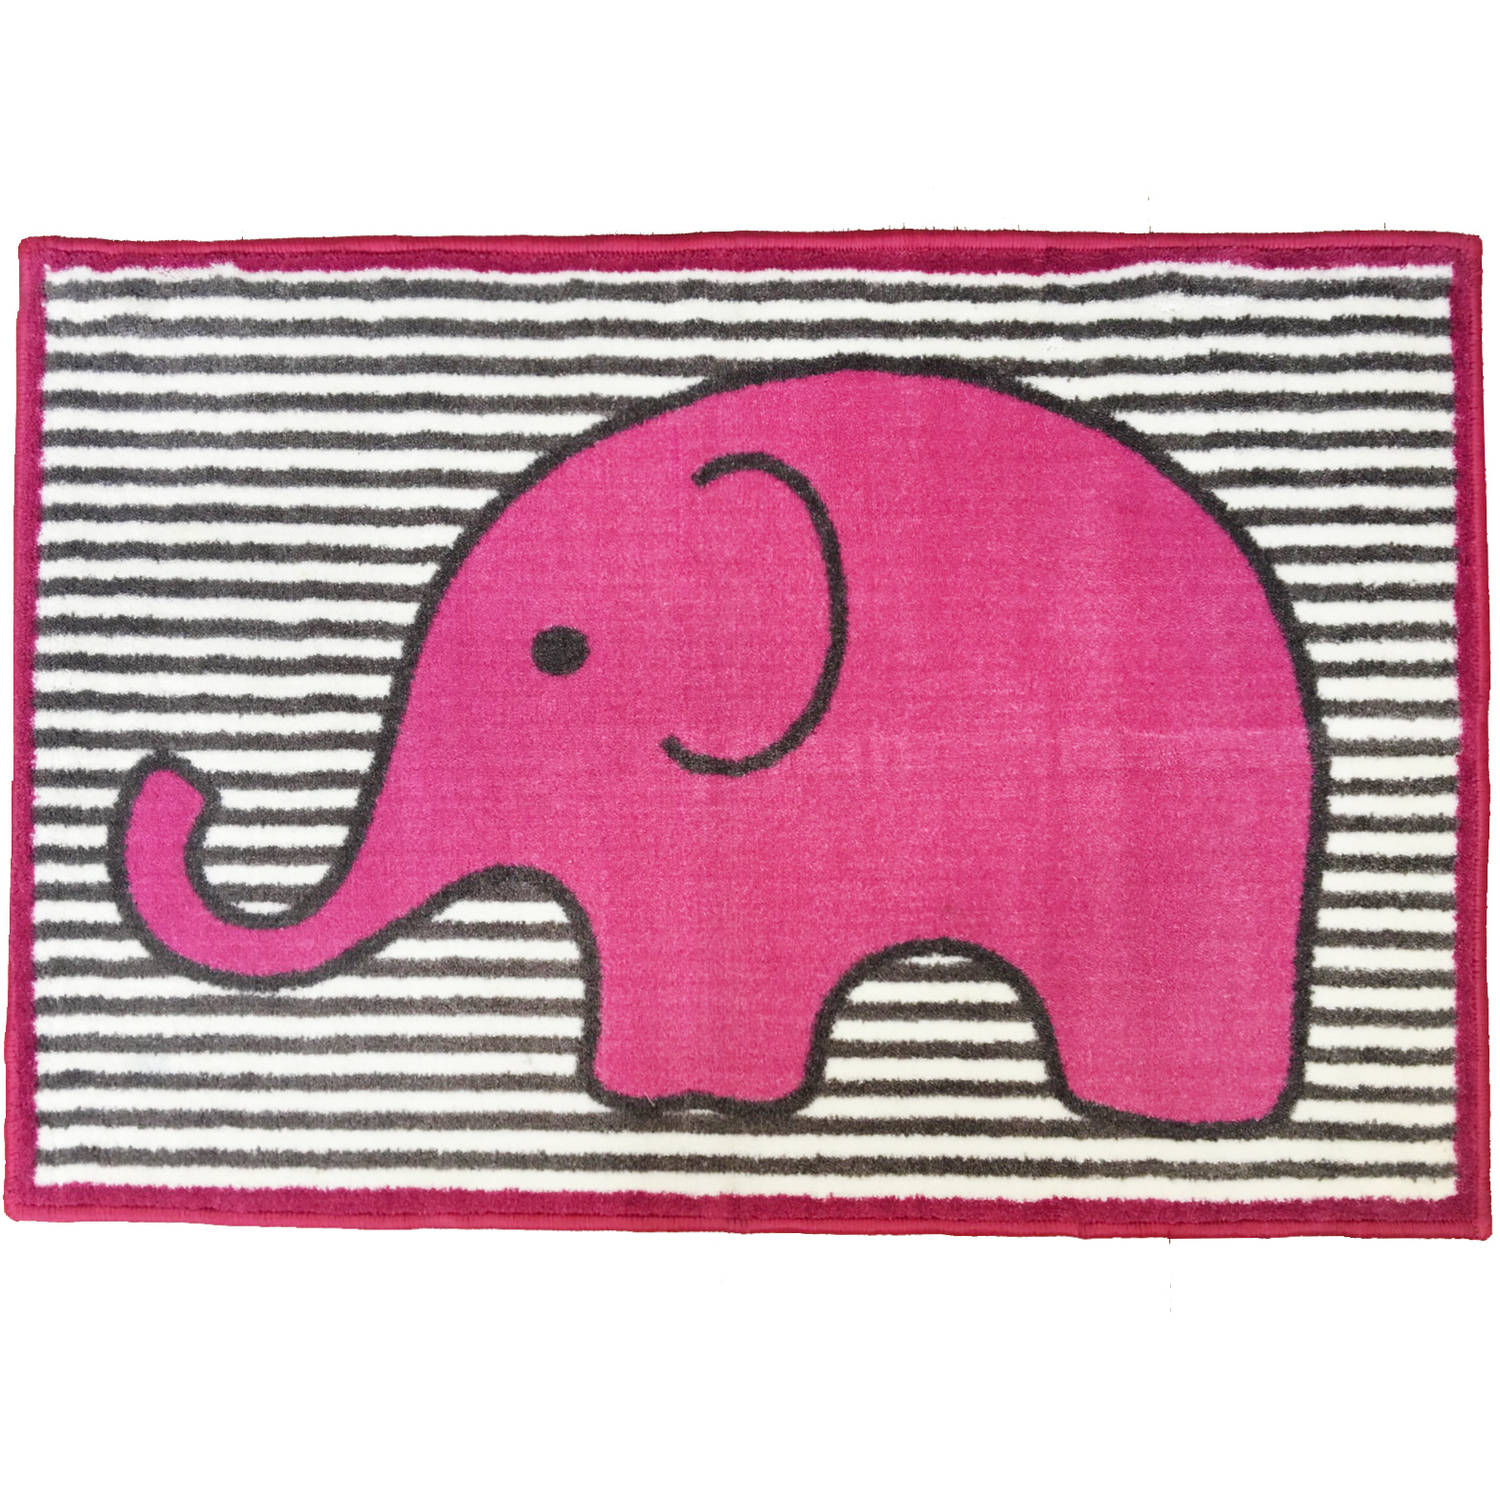 Bacati - Elephants Rug 24 x 36 inches Nylon with nonskid backing, Pink/Gray